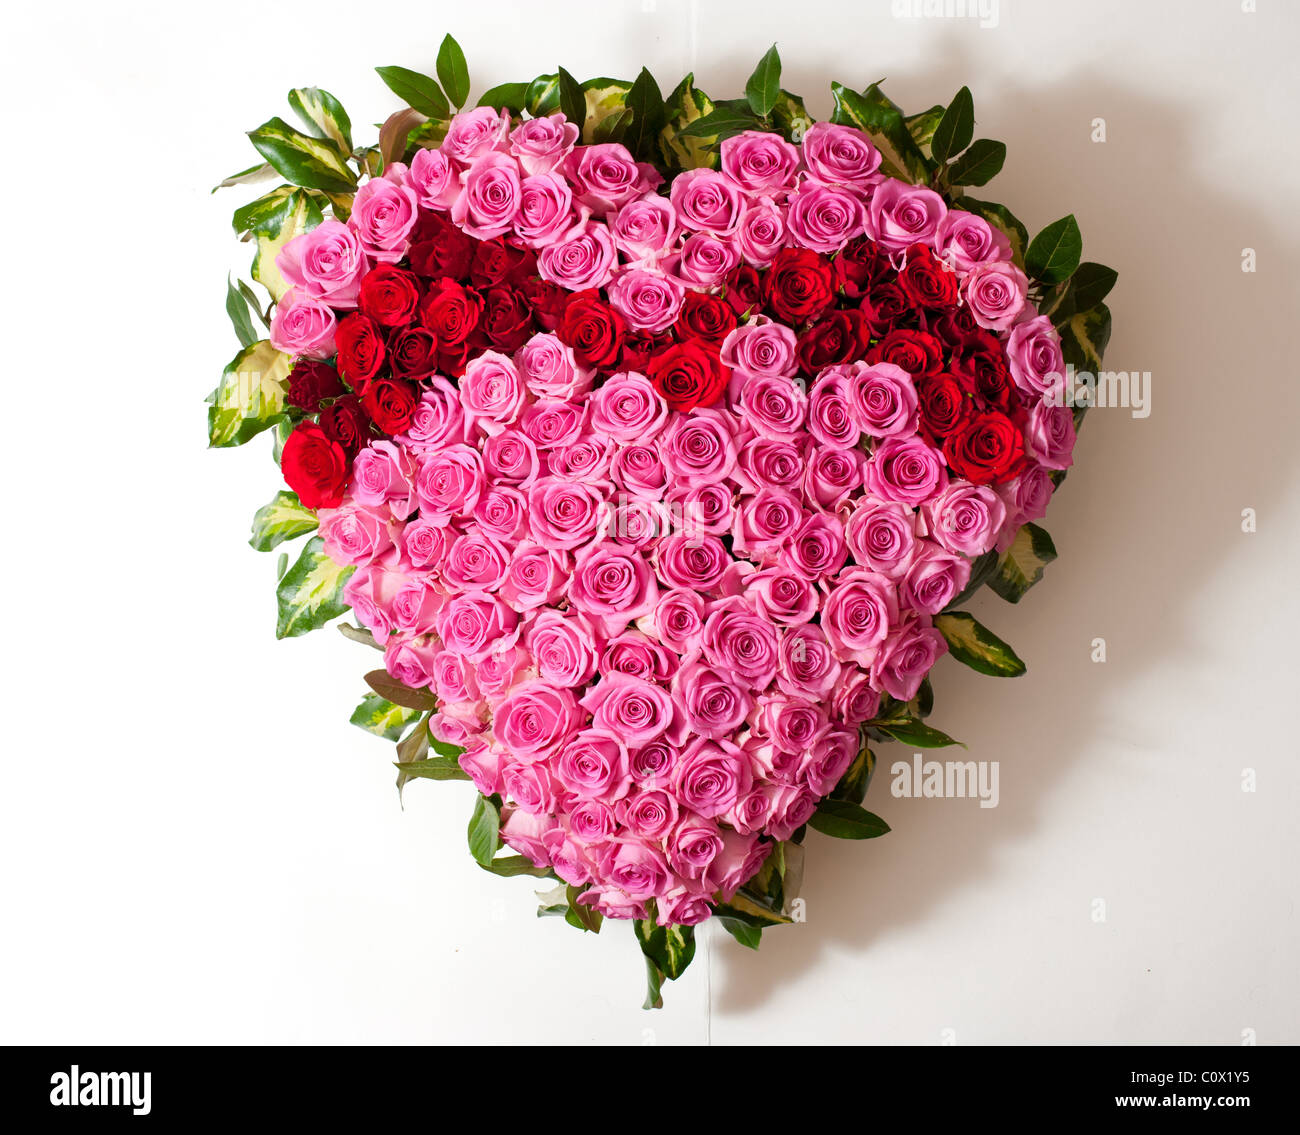 Heart shaped funeral flowers stock photo 34993033 alamy heart shaped funeral flowers izmirmasajfo